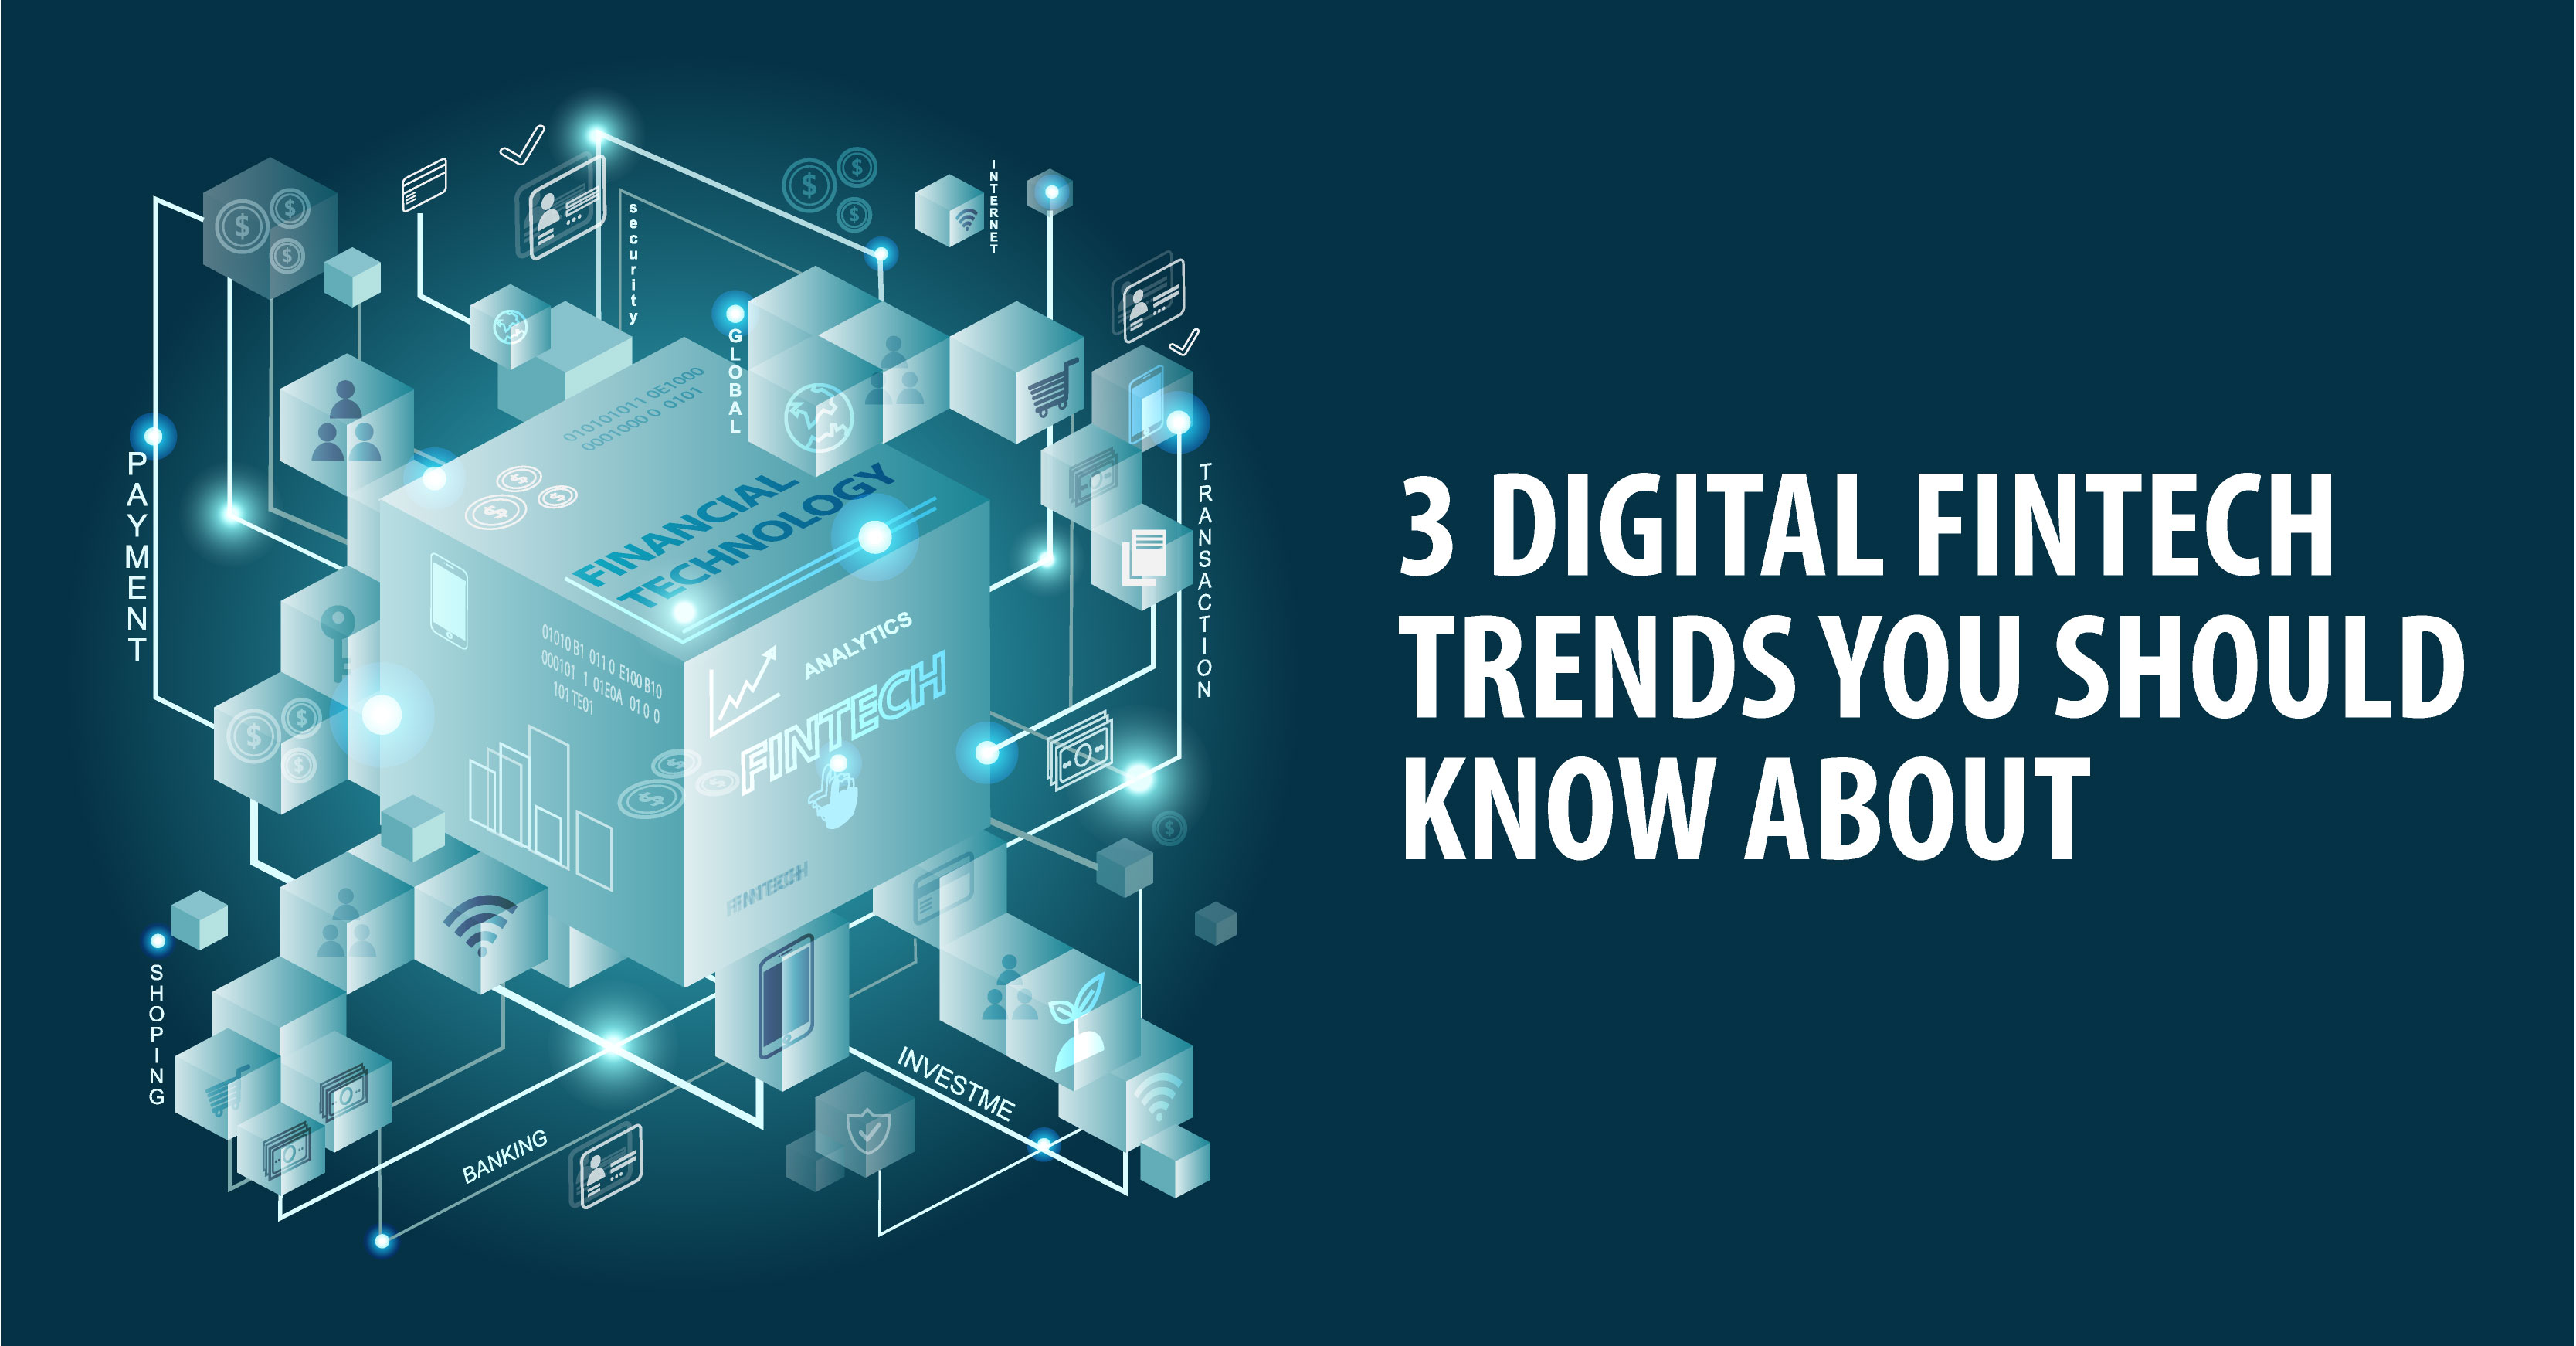 3 DIGITAL FINTECH TRENDS YOU SHOULD KNOW ABOUT